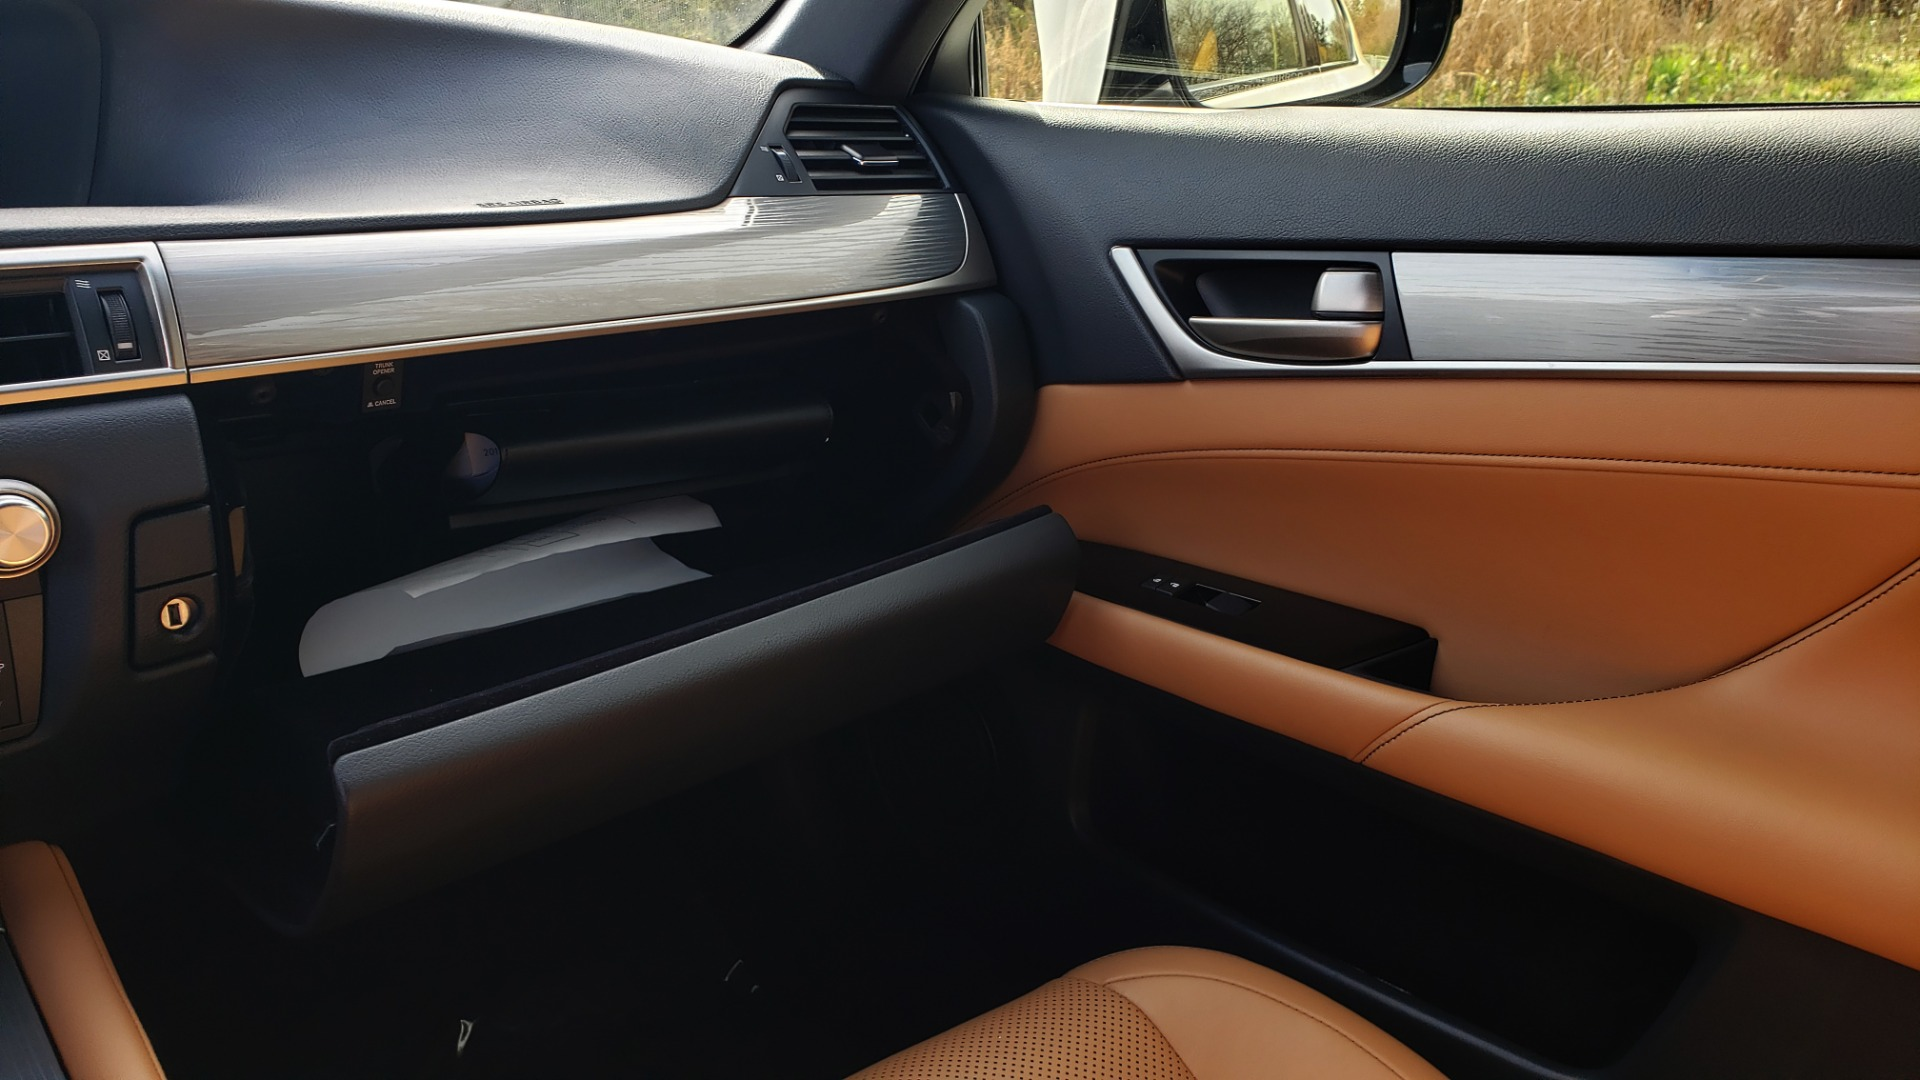 Used 2013 Lexus GS 350 F-SPORT / NAV / SUNROOF / BSM / PRK ASST / REARVIEW for sale Sold at Formula Imports in Charlotte NC 28227 46